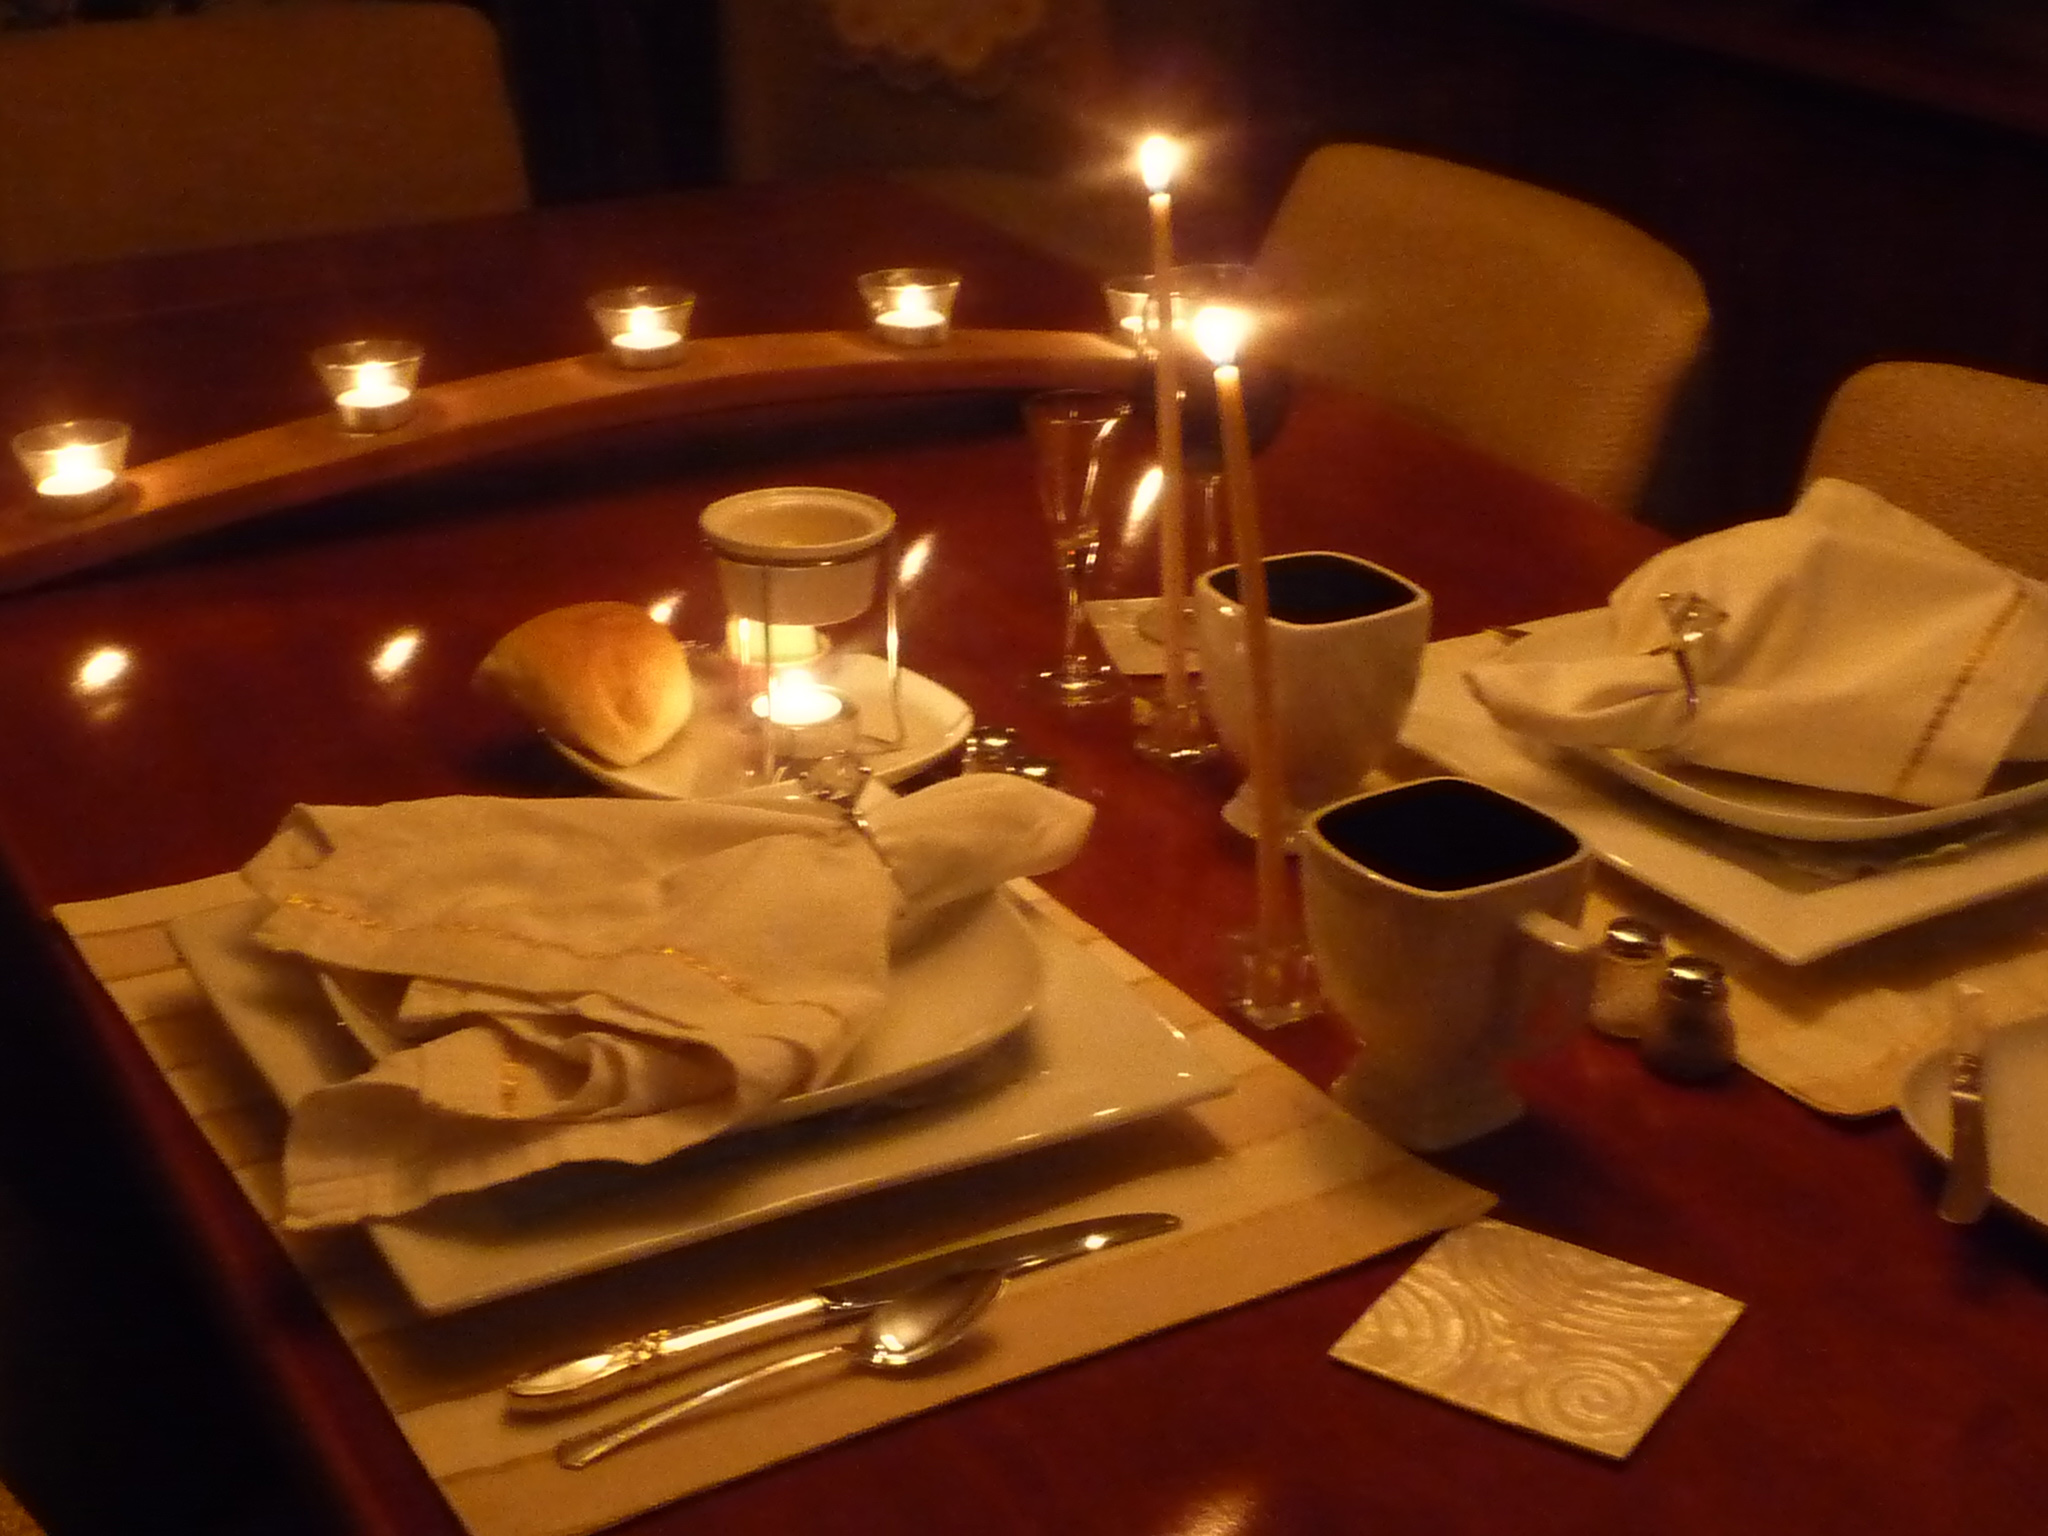 Romantic dinner setting at home for two for Romantic dinner